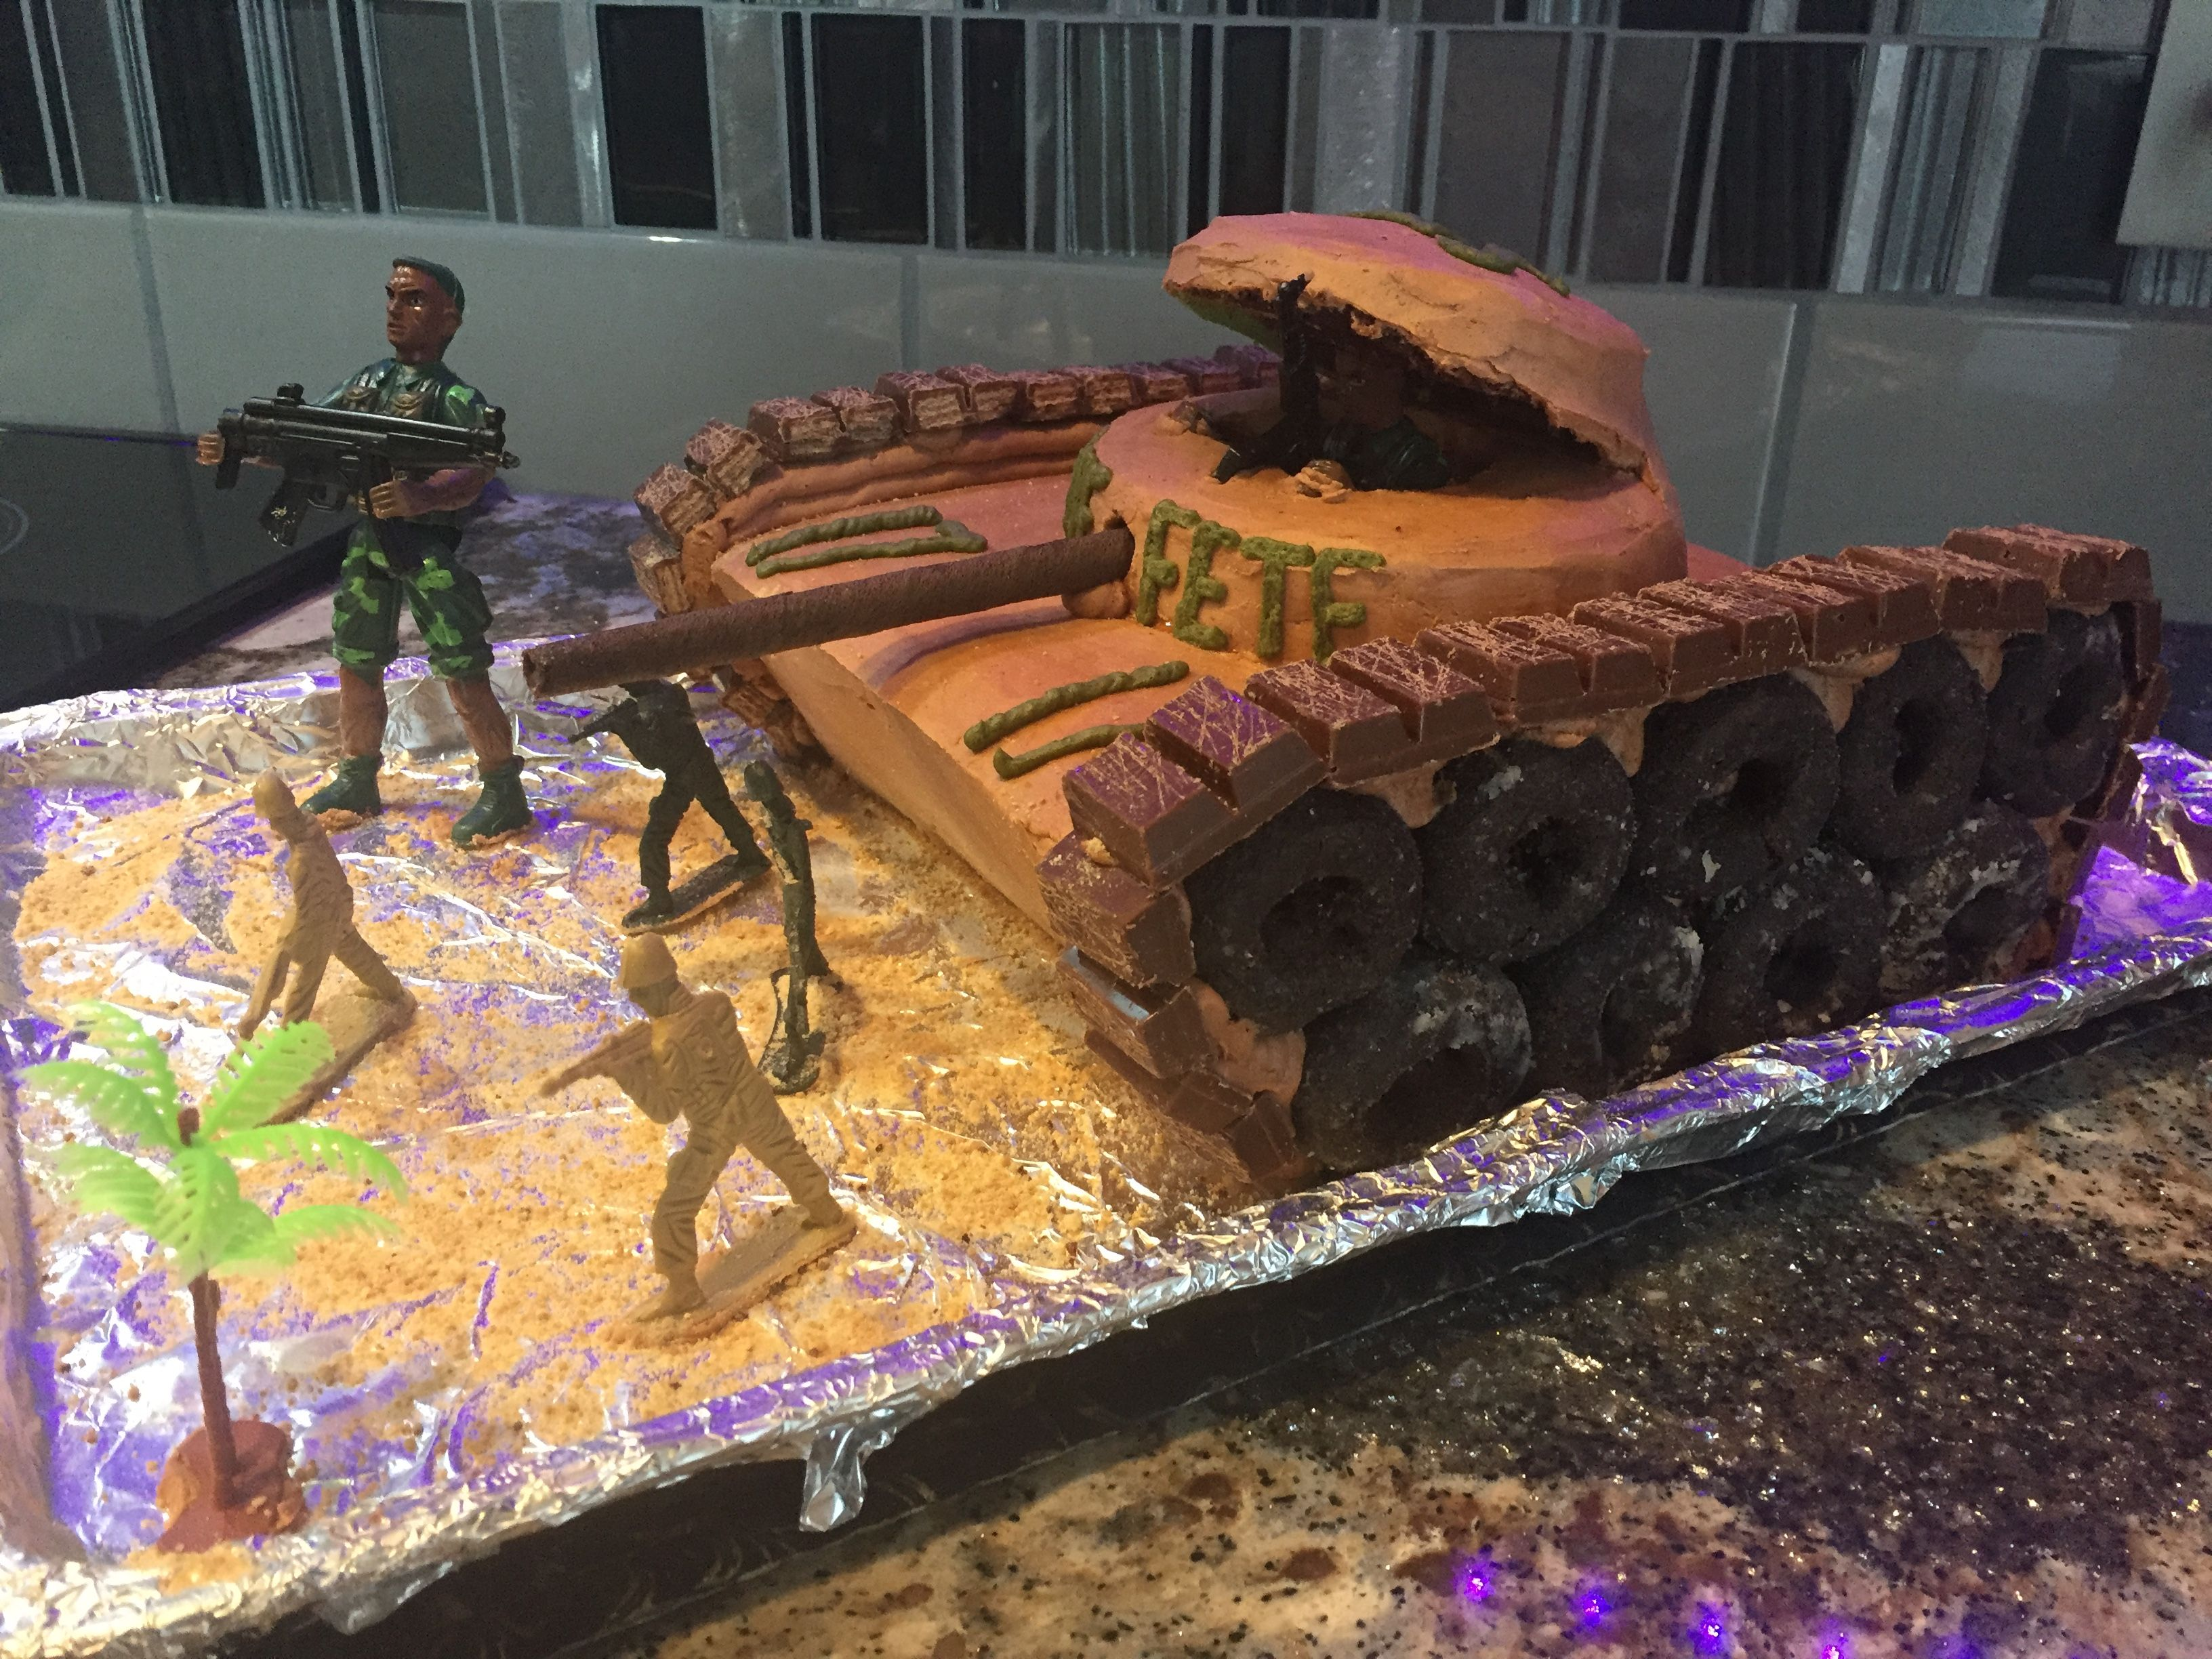 Got A Request From My Son For An Army Tank Cake For His